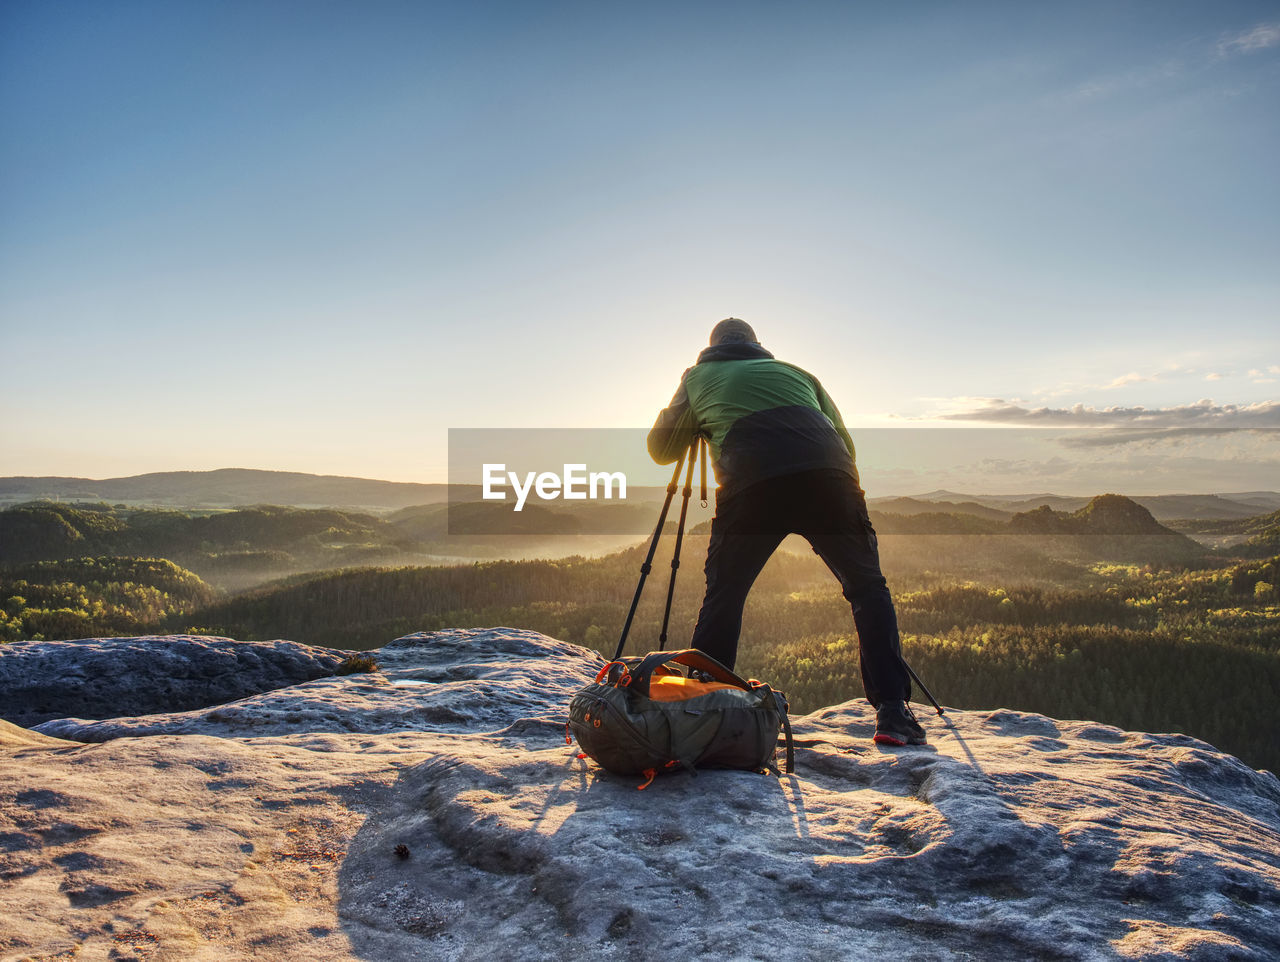 Artist set camera and tripod to photograph the sunrise on a rocky summit. artist works in nature